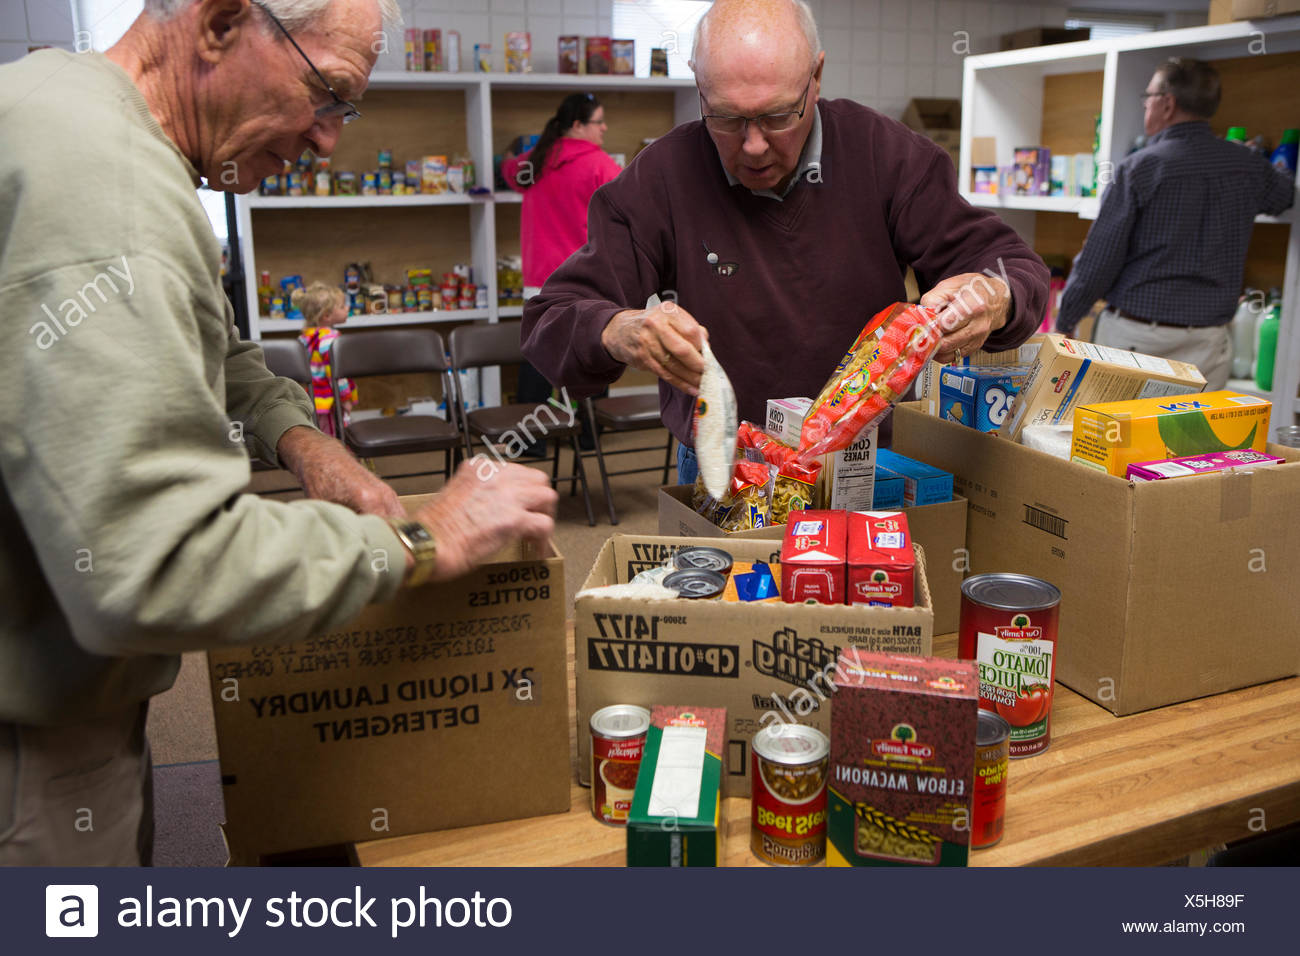 Volunteers pack boxes of donated food at the Mitchell County Food Bank in Osage Iowa. Stock Photo